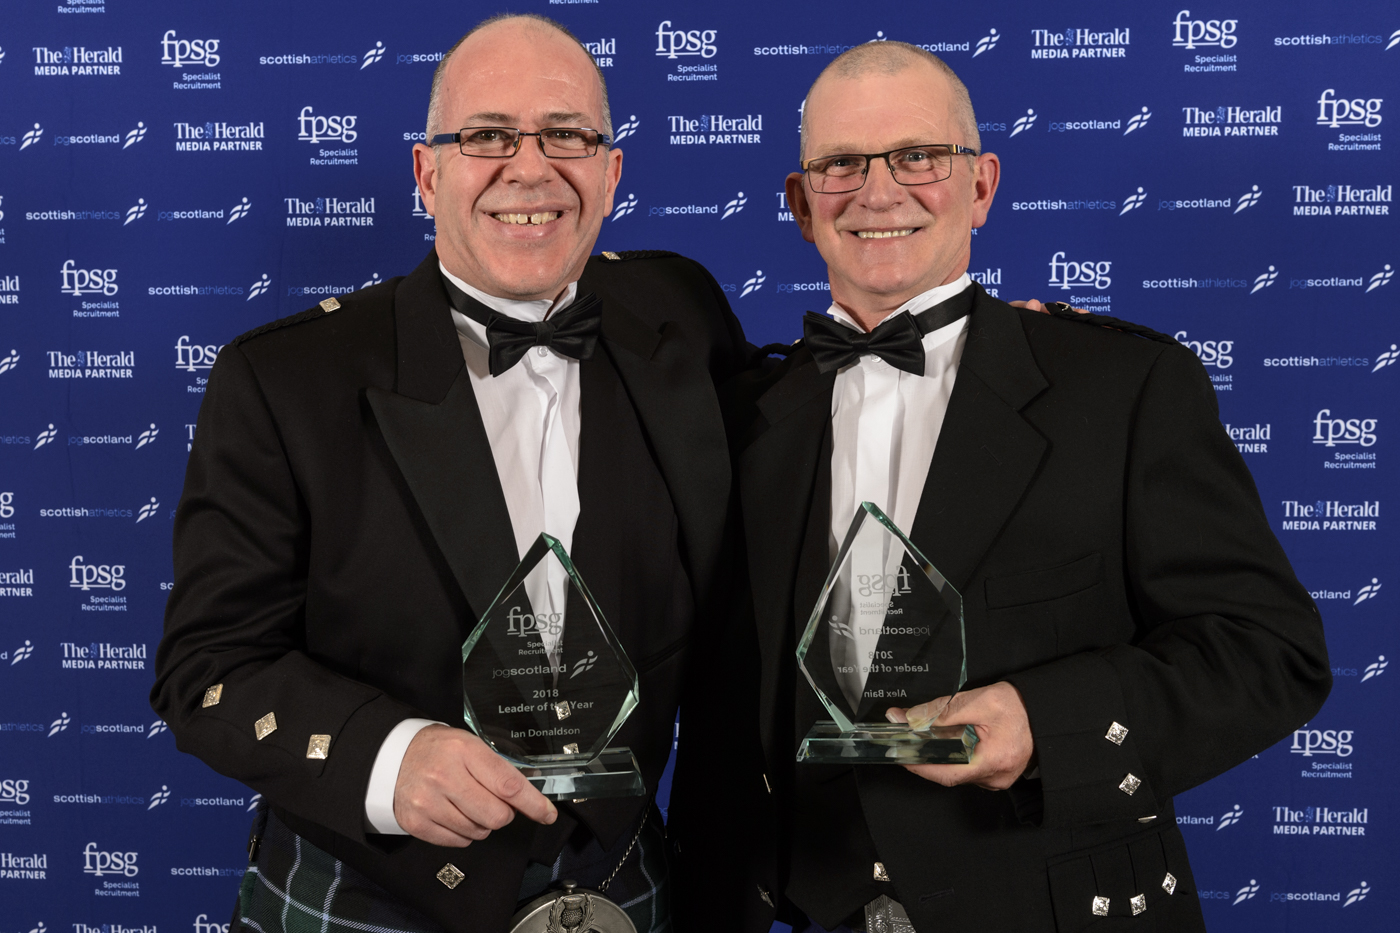 Alex Bain and Ian Donaldson, in kilts, jackets and bow ties, holding their awards